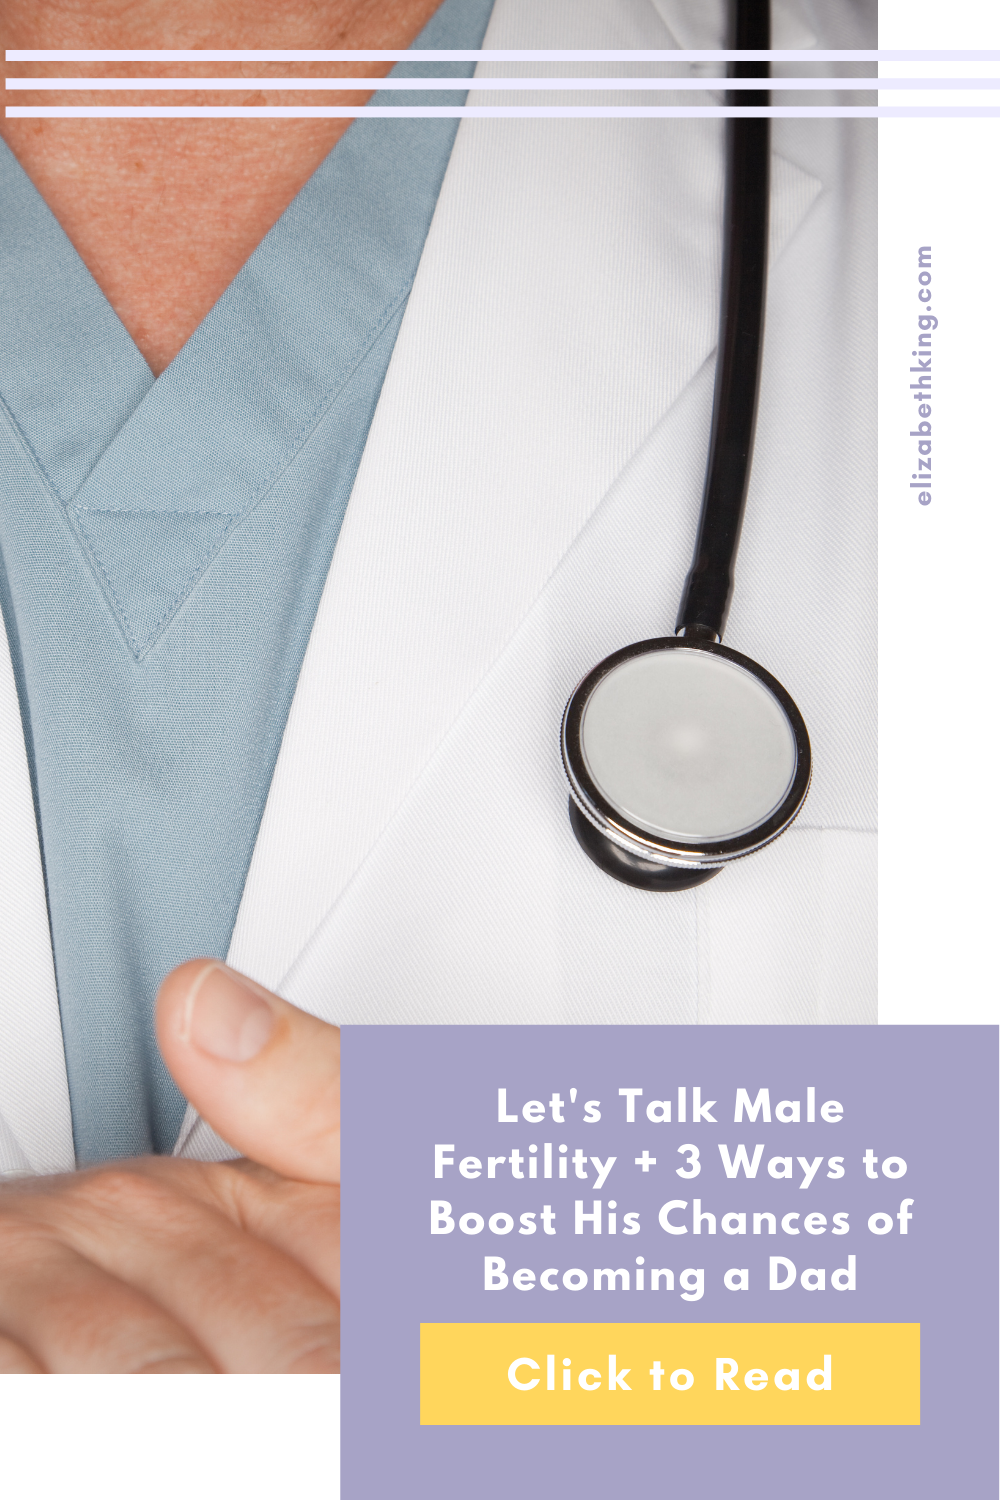 Let's Talk Male Fertility + 3 Ways to Boost His Chances of Becoming a Dad | ElizabethKing.com